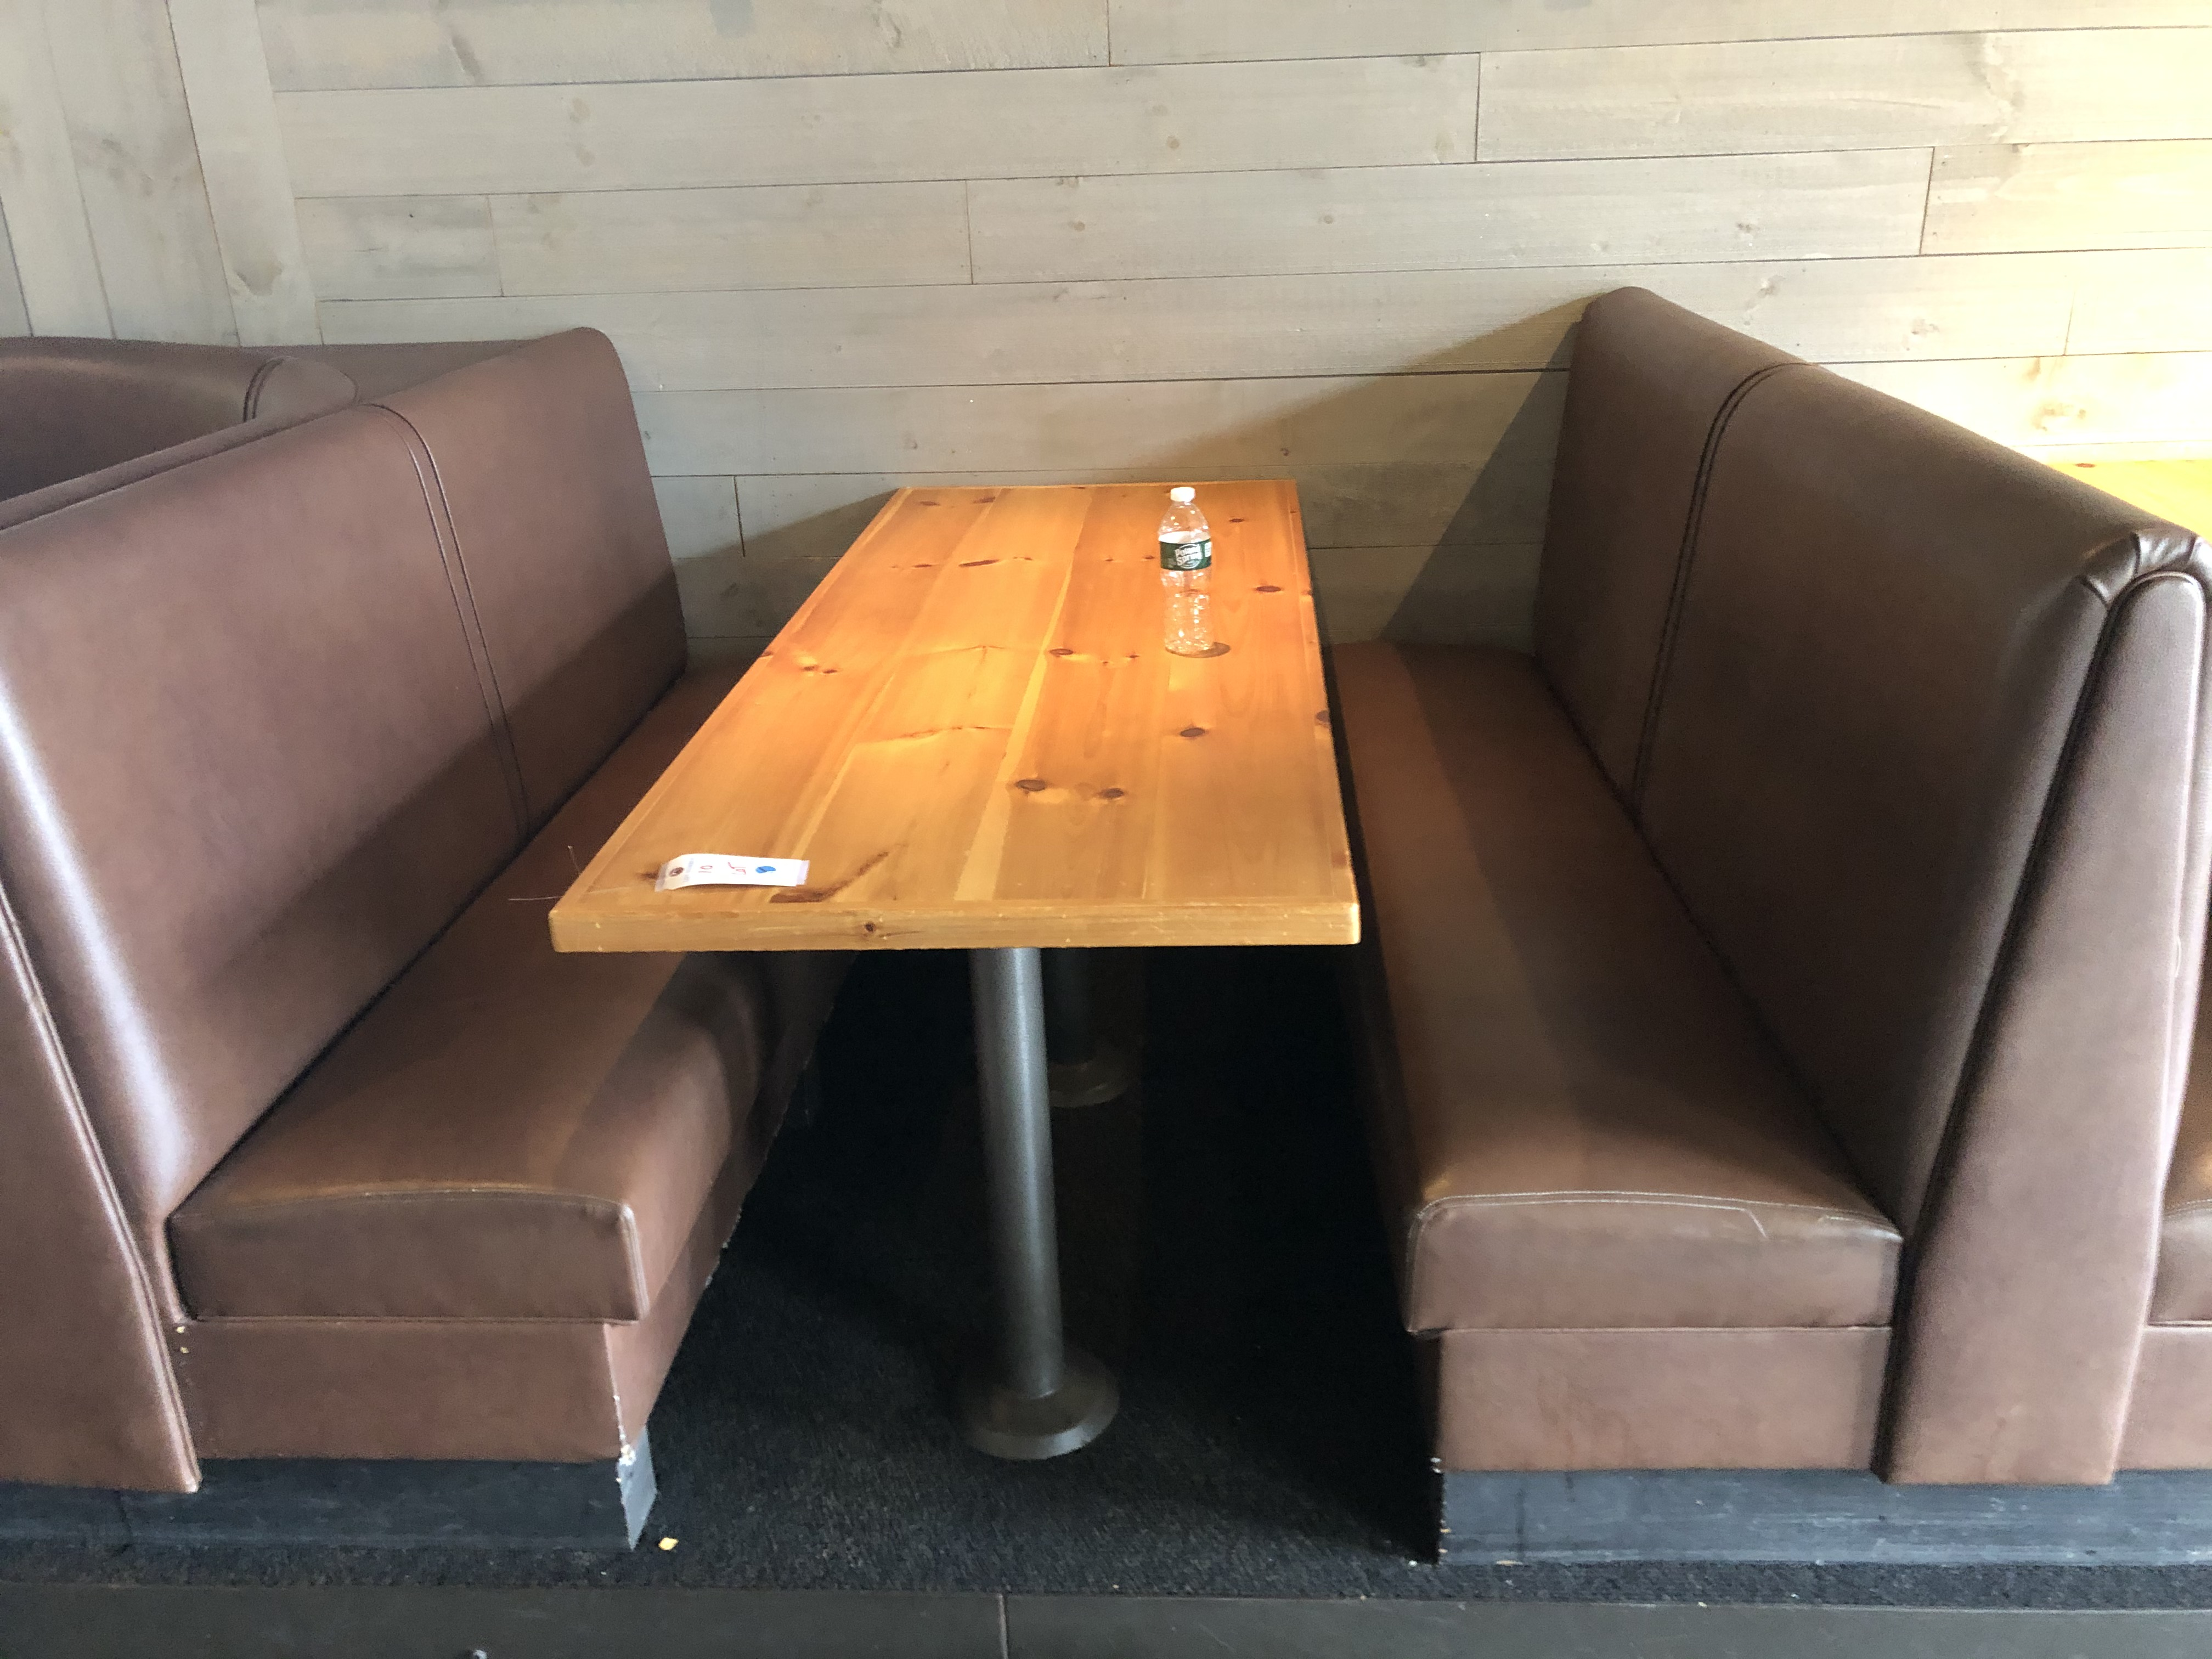 {LOT} (4) Complete Booth Setups c/o: (2) Fully Upholstered U-Shaped 7' x 6' Booths w/Double Pedestal - Image 4 of 4